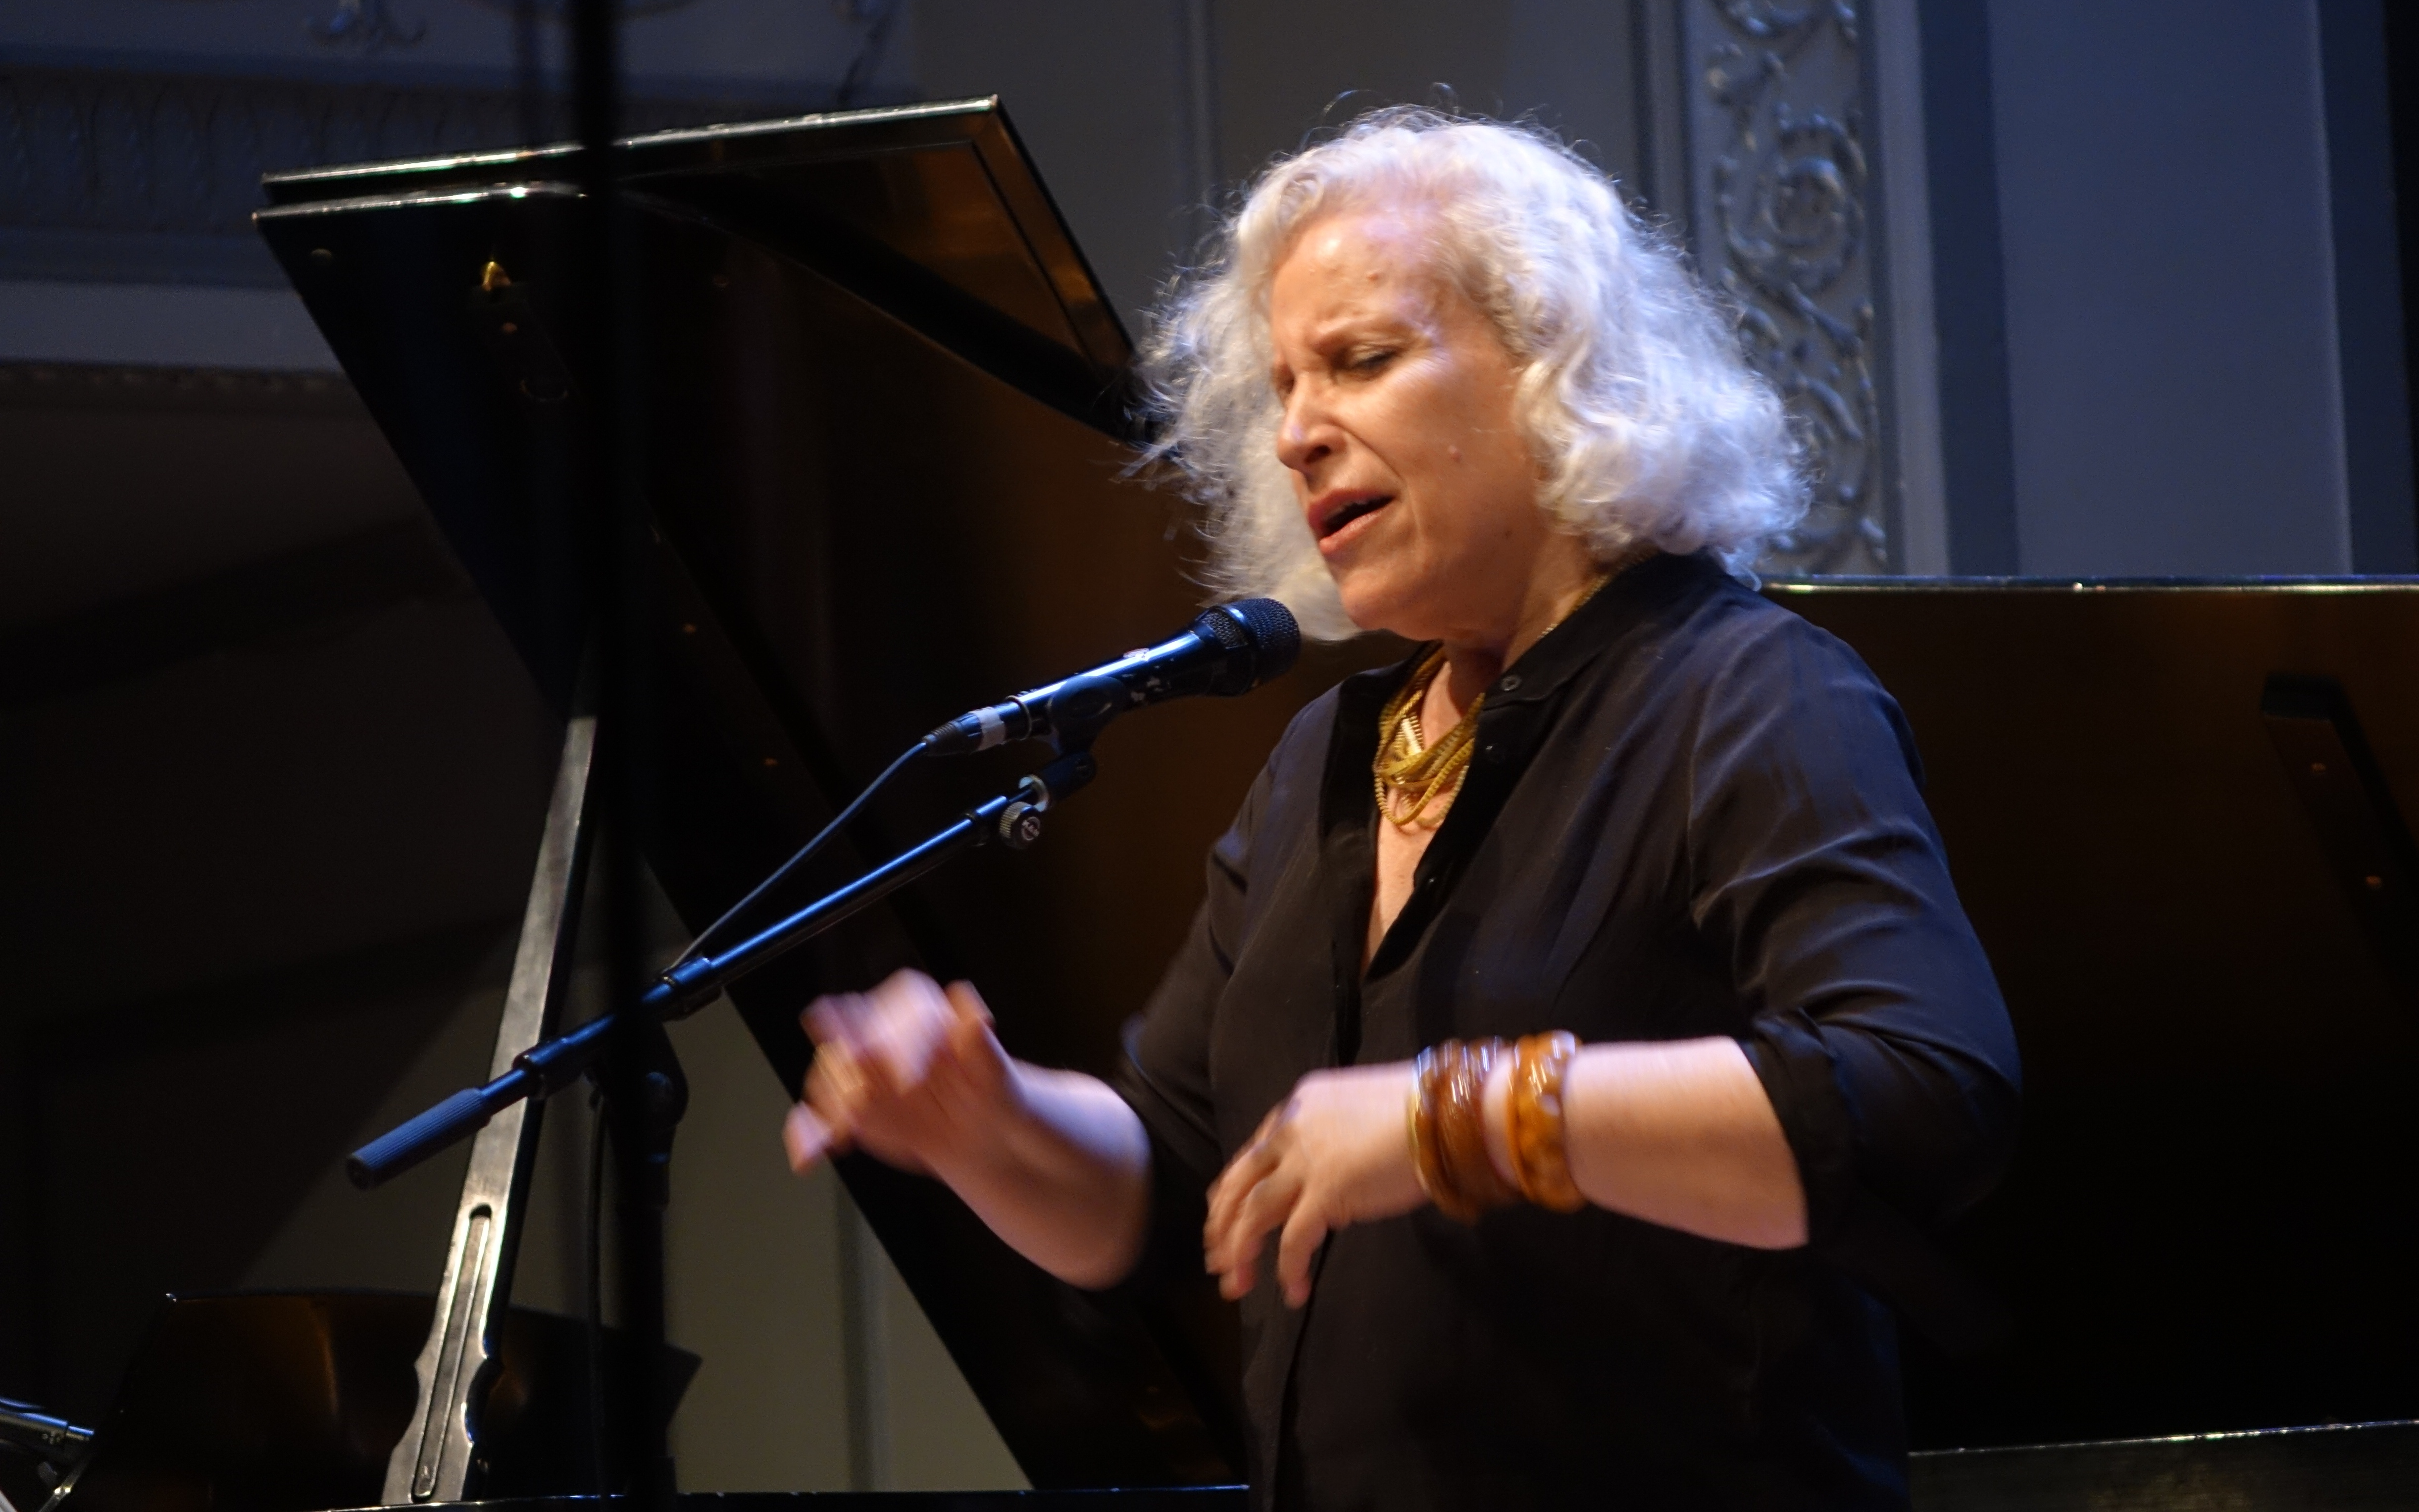 Lisa Sokolov at the Vision Festival in Roulette, Brooklyn in June 2019